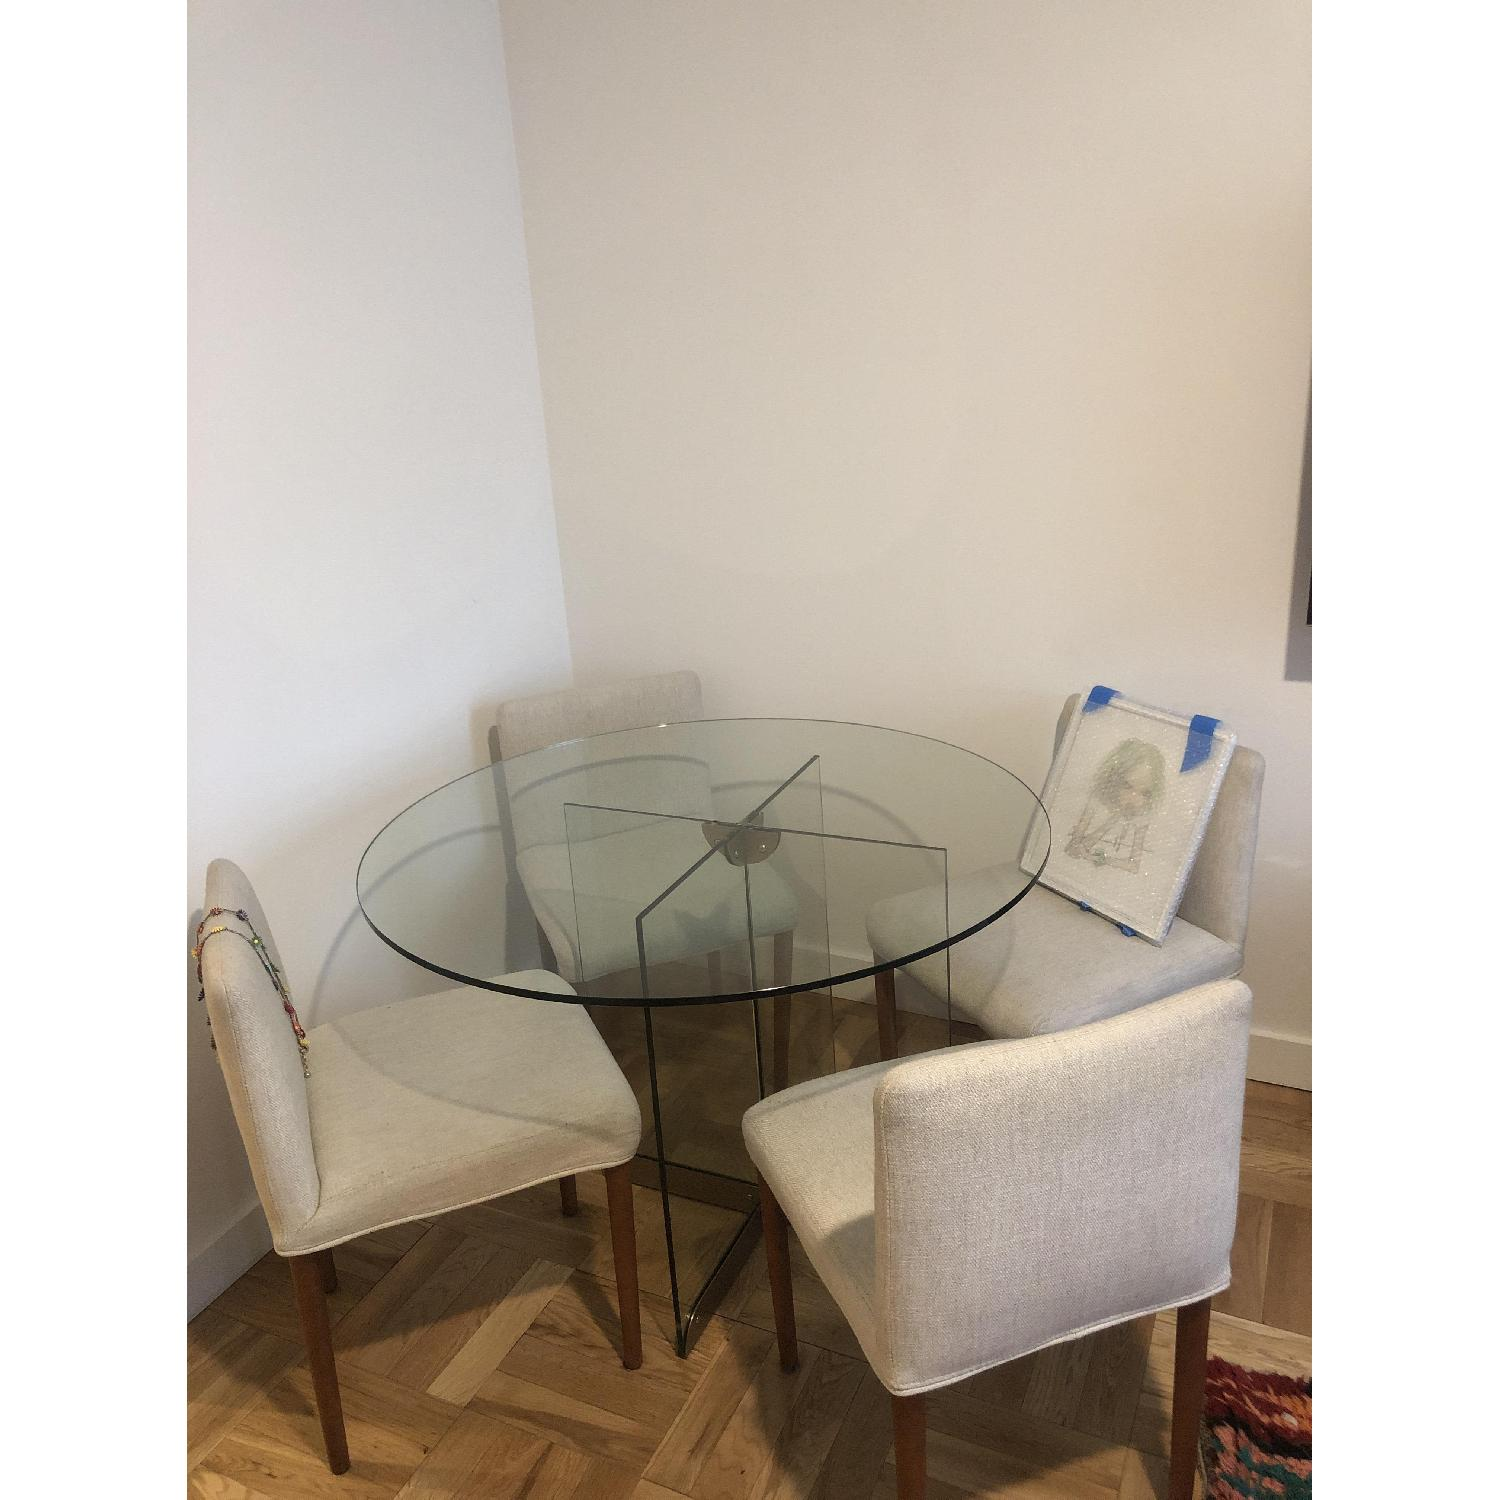 West Elm Glass Dining Table w/ 4 Wood & Fabric Chairs - image-1